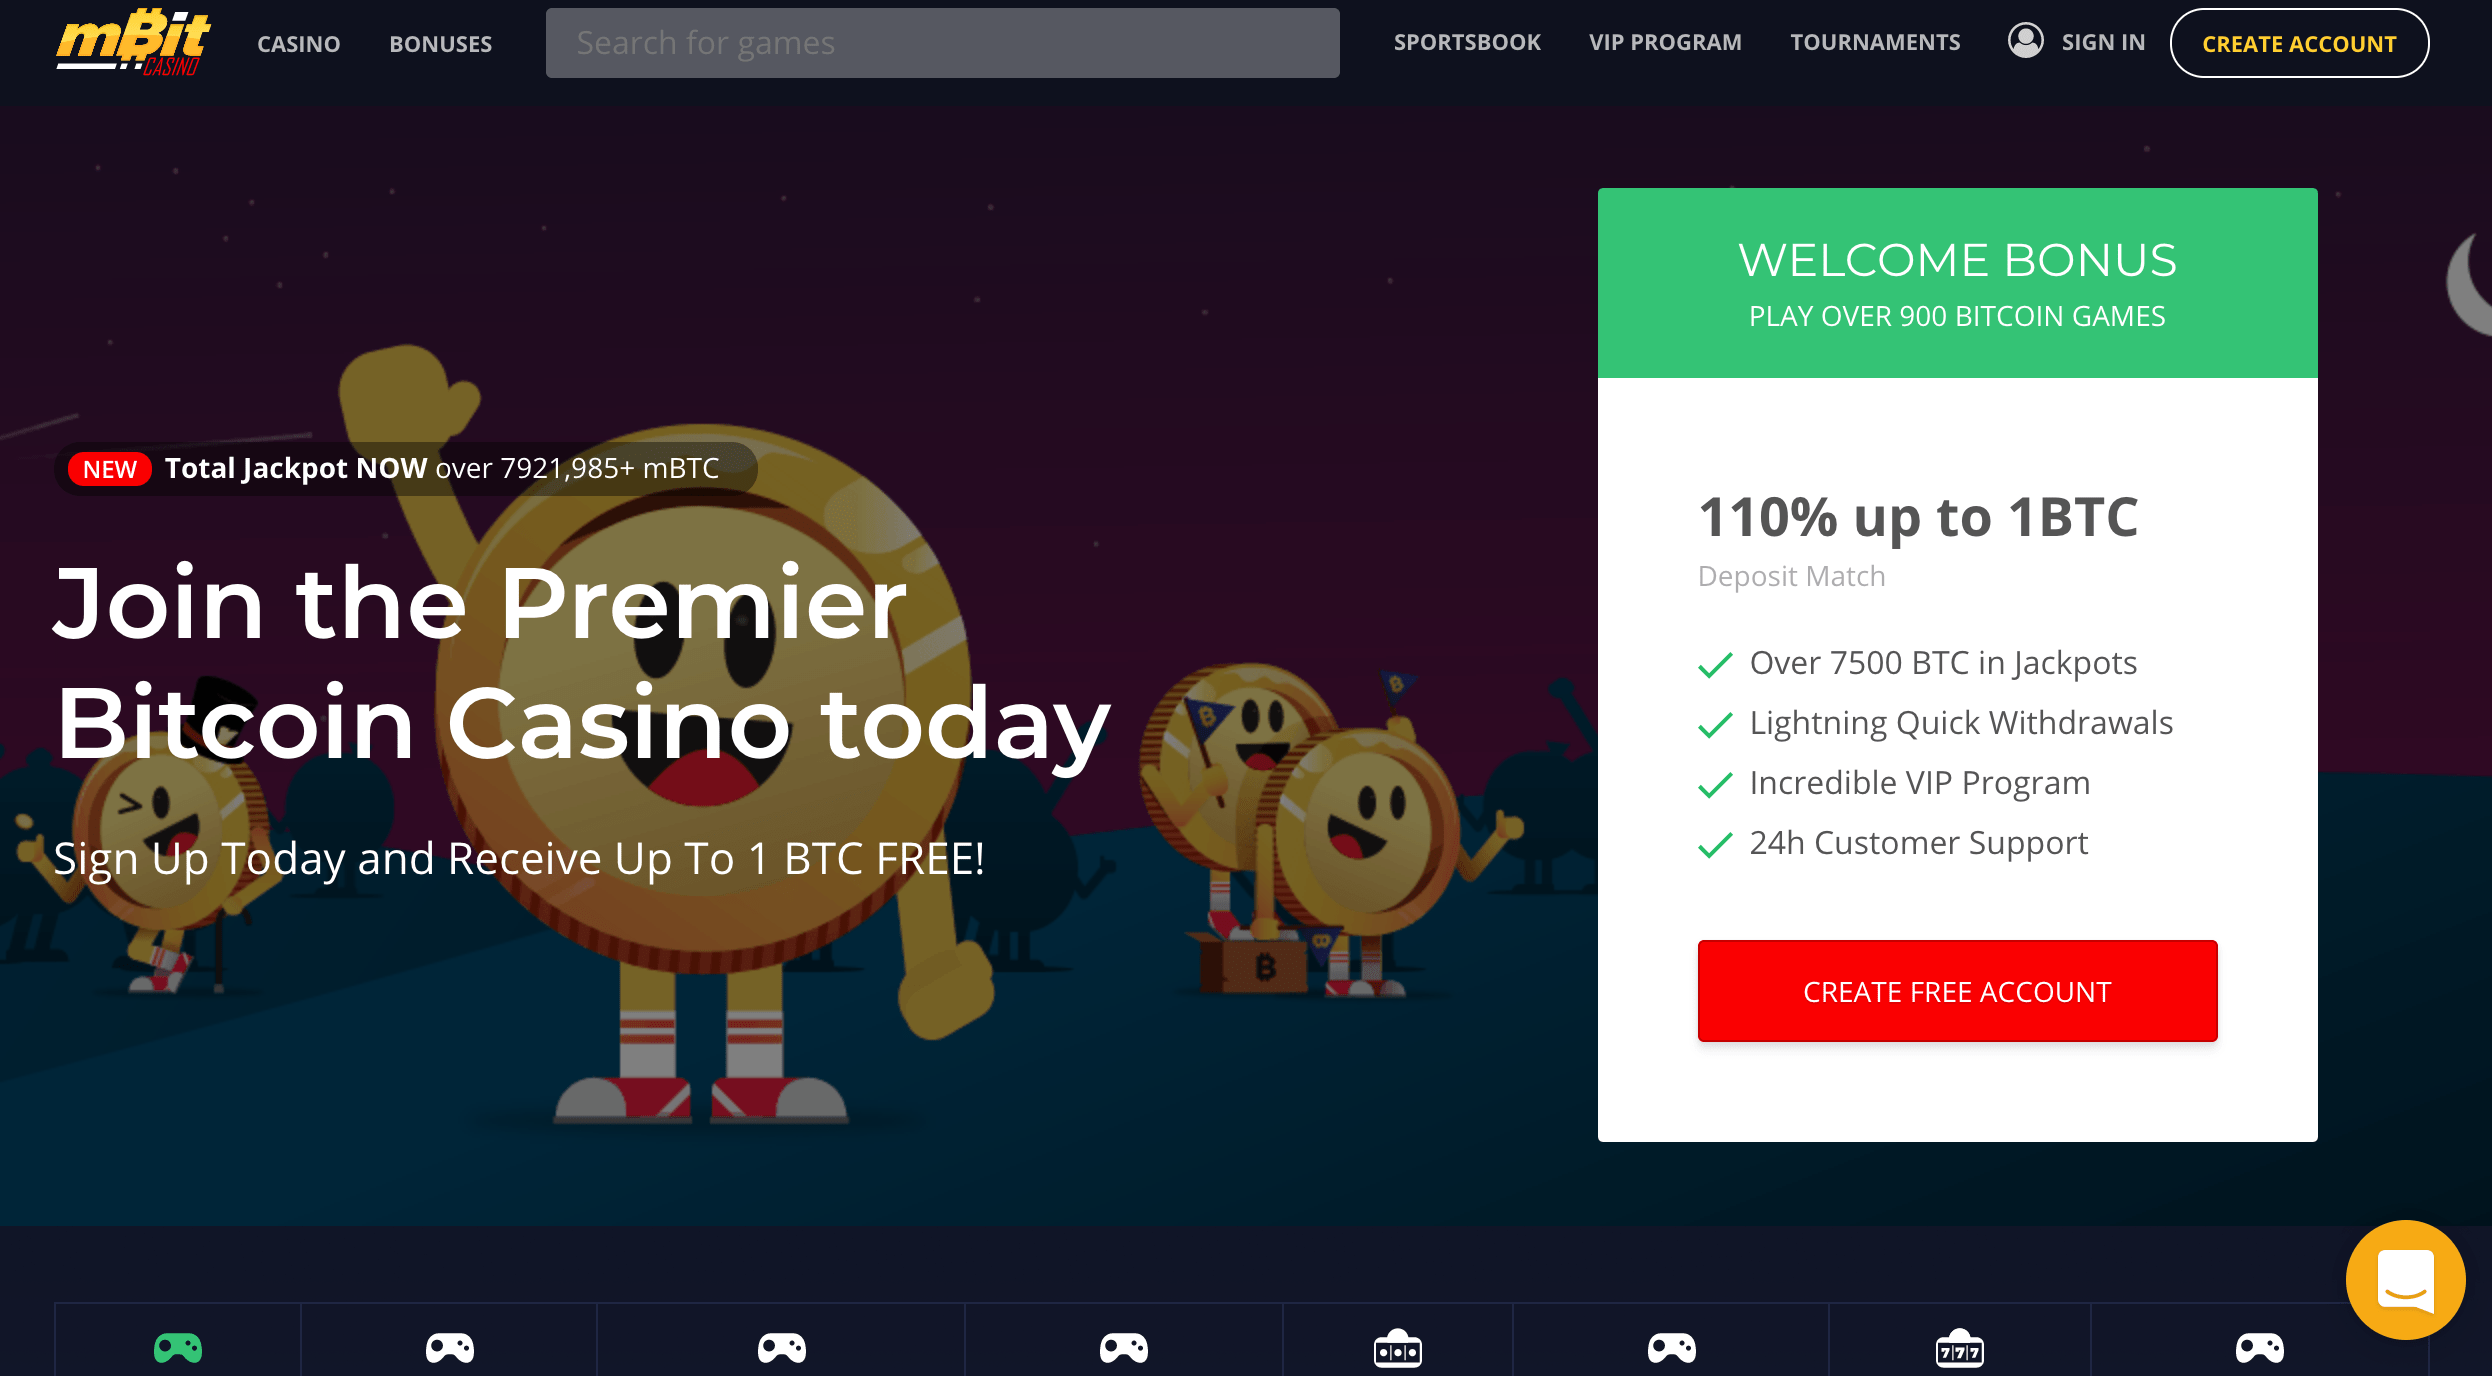 mBit Casino Bonuses & VIP Program